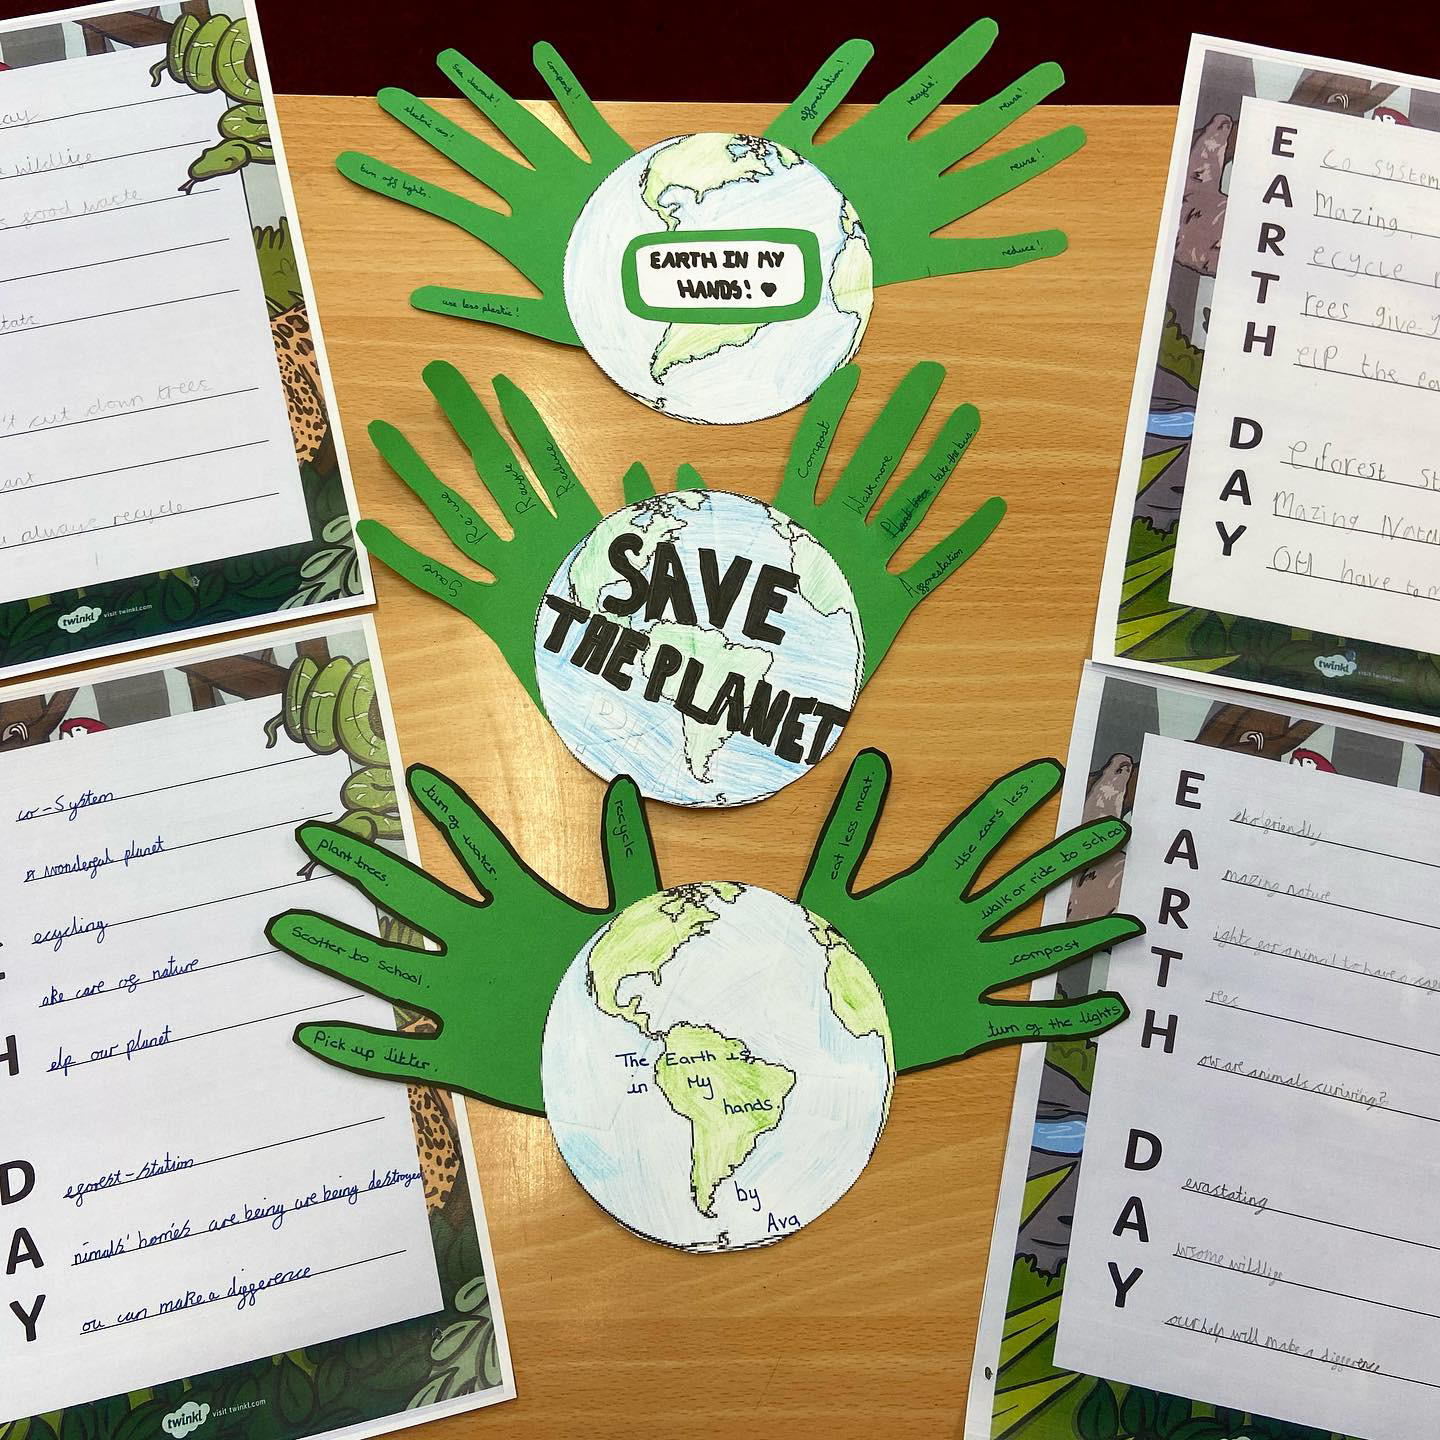 Purbrook celebrated Earth Day 2021 on April 22nd. Classes focused on ways in which to reduce their carbon footprint were discussed including the importance of the Paris Climate Summit Agreement. Children expressed their thoughts and ideas through acrostic poems and stimulating art work.